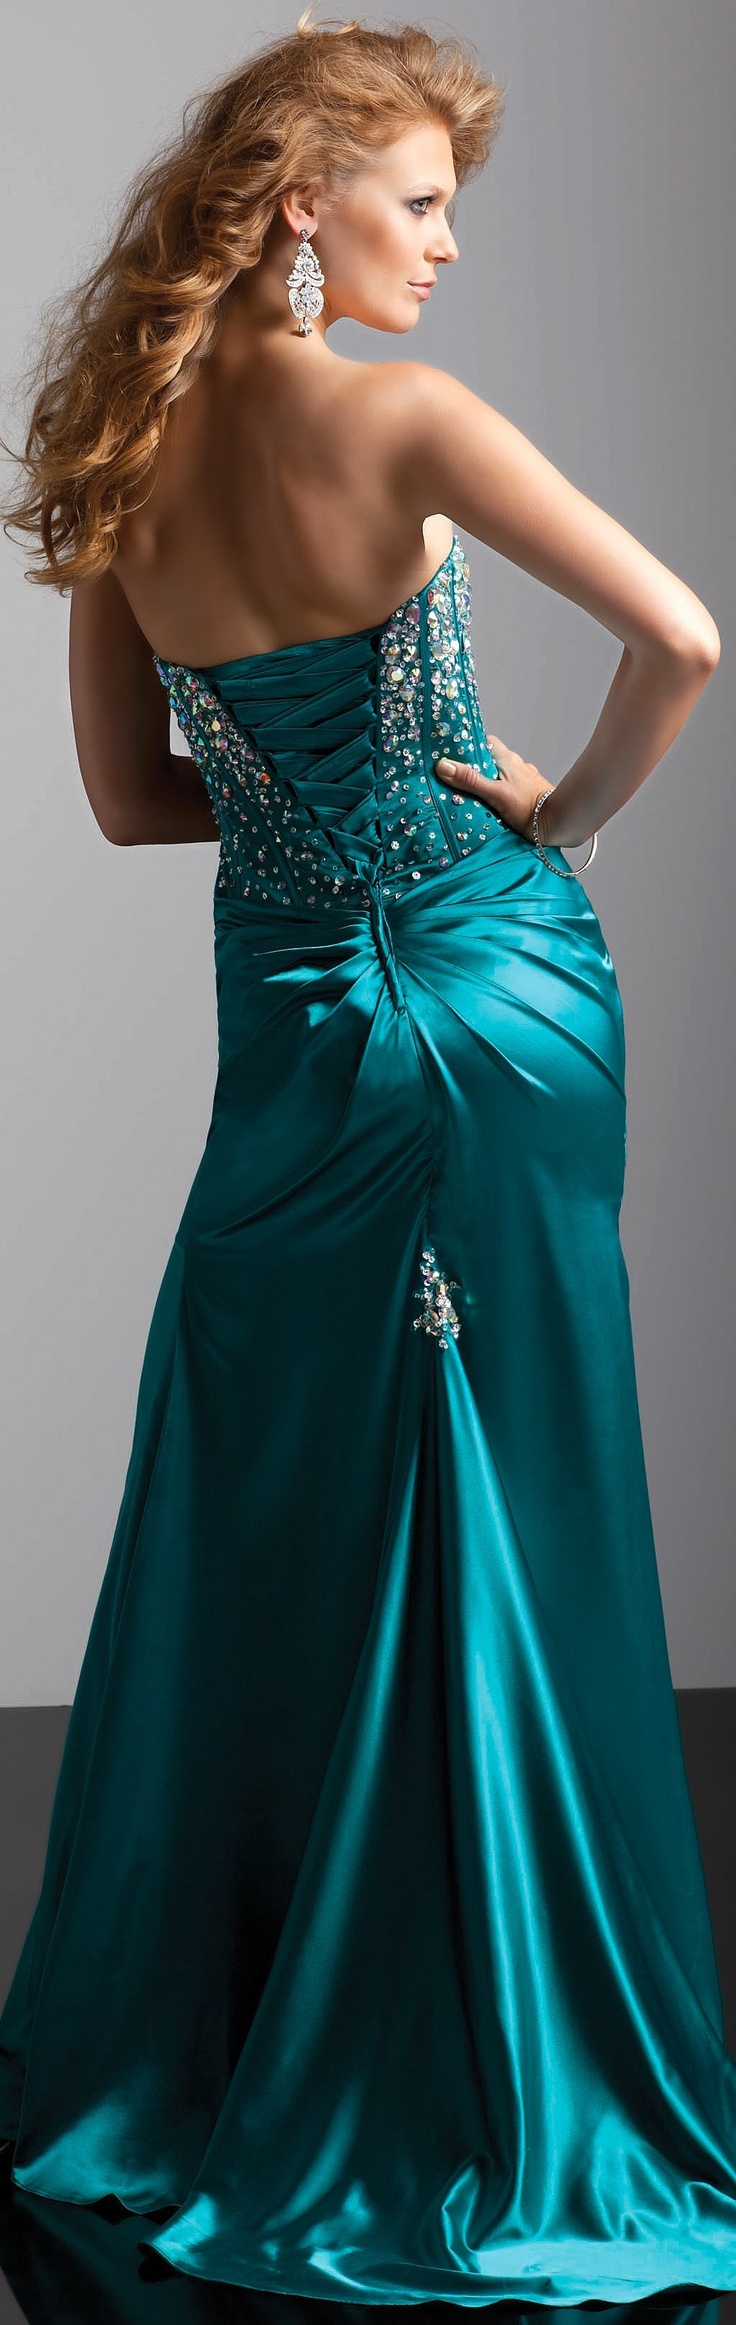 262 best My Style images on Pinterest | Evening gowns, Formal ...